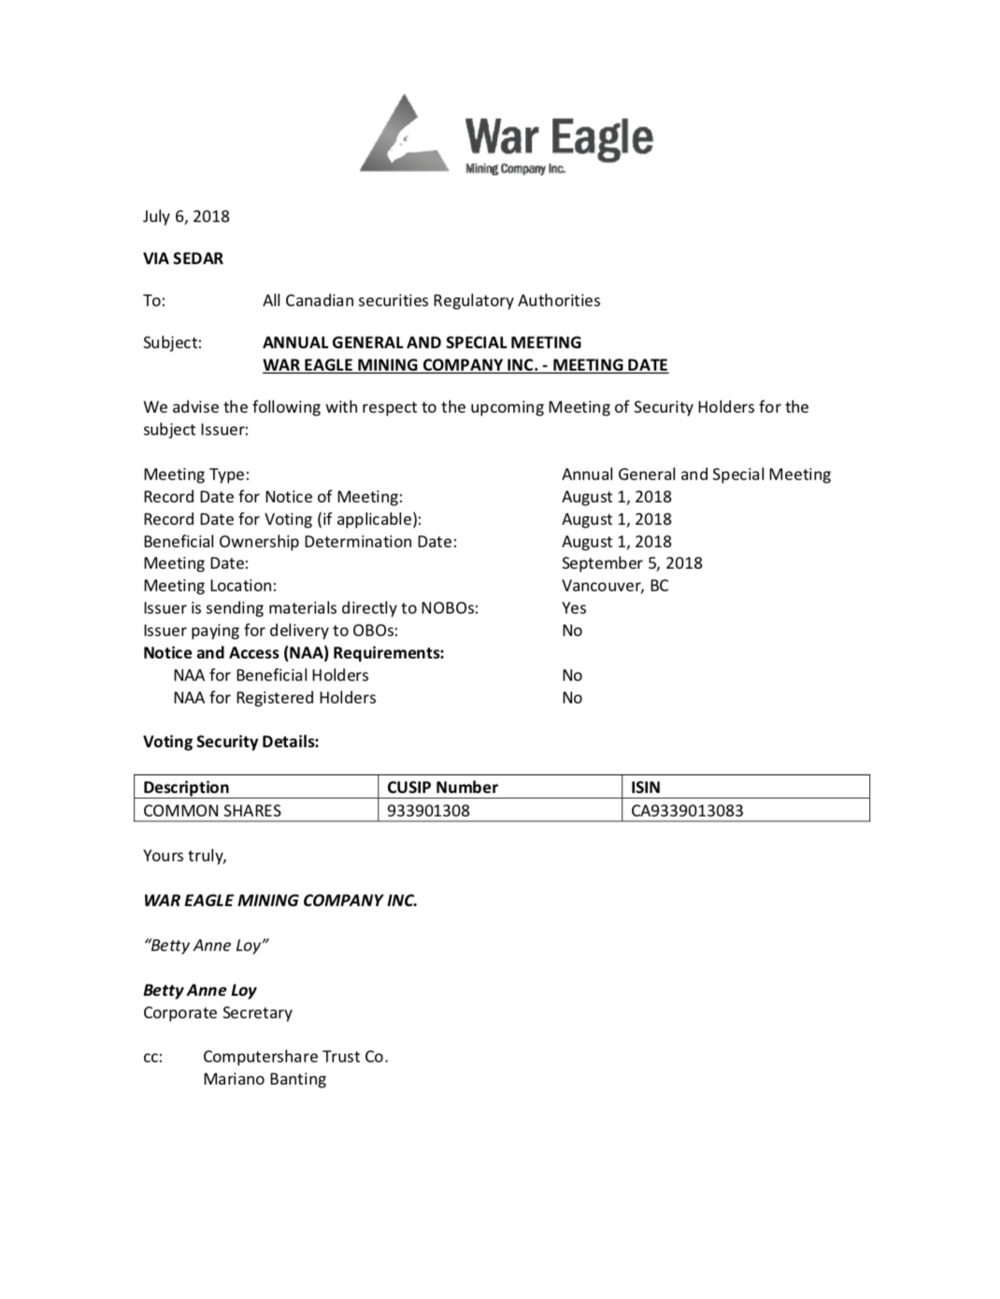 War Eagle Mining ANNUAL GENERAL AND SPECIAL MEETING